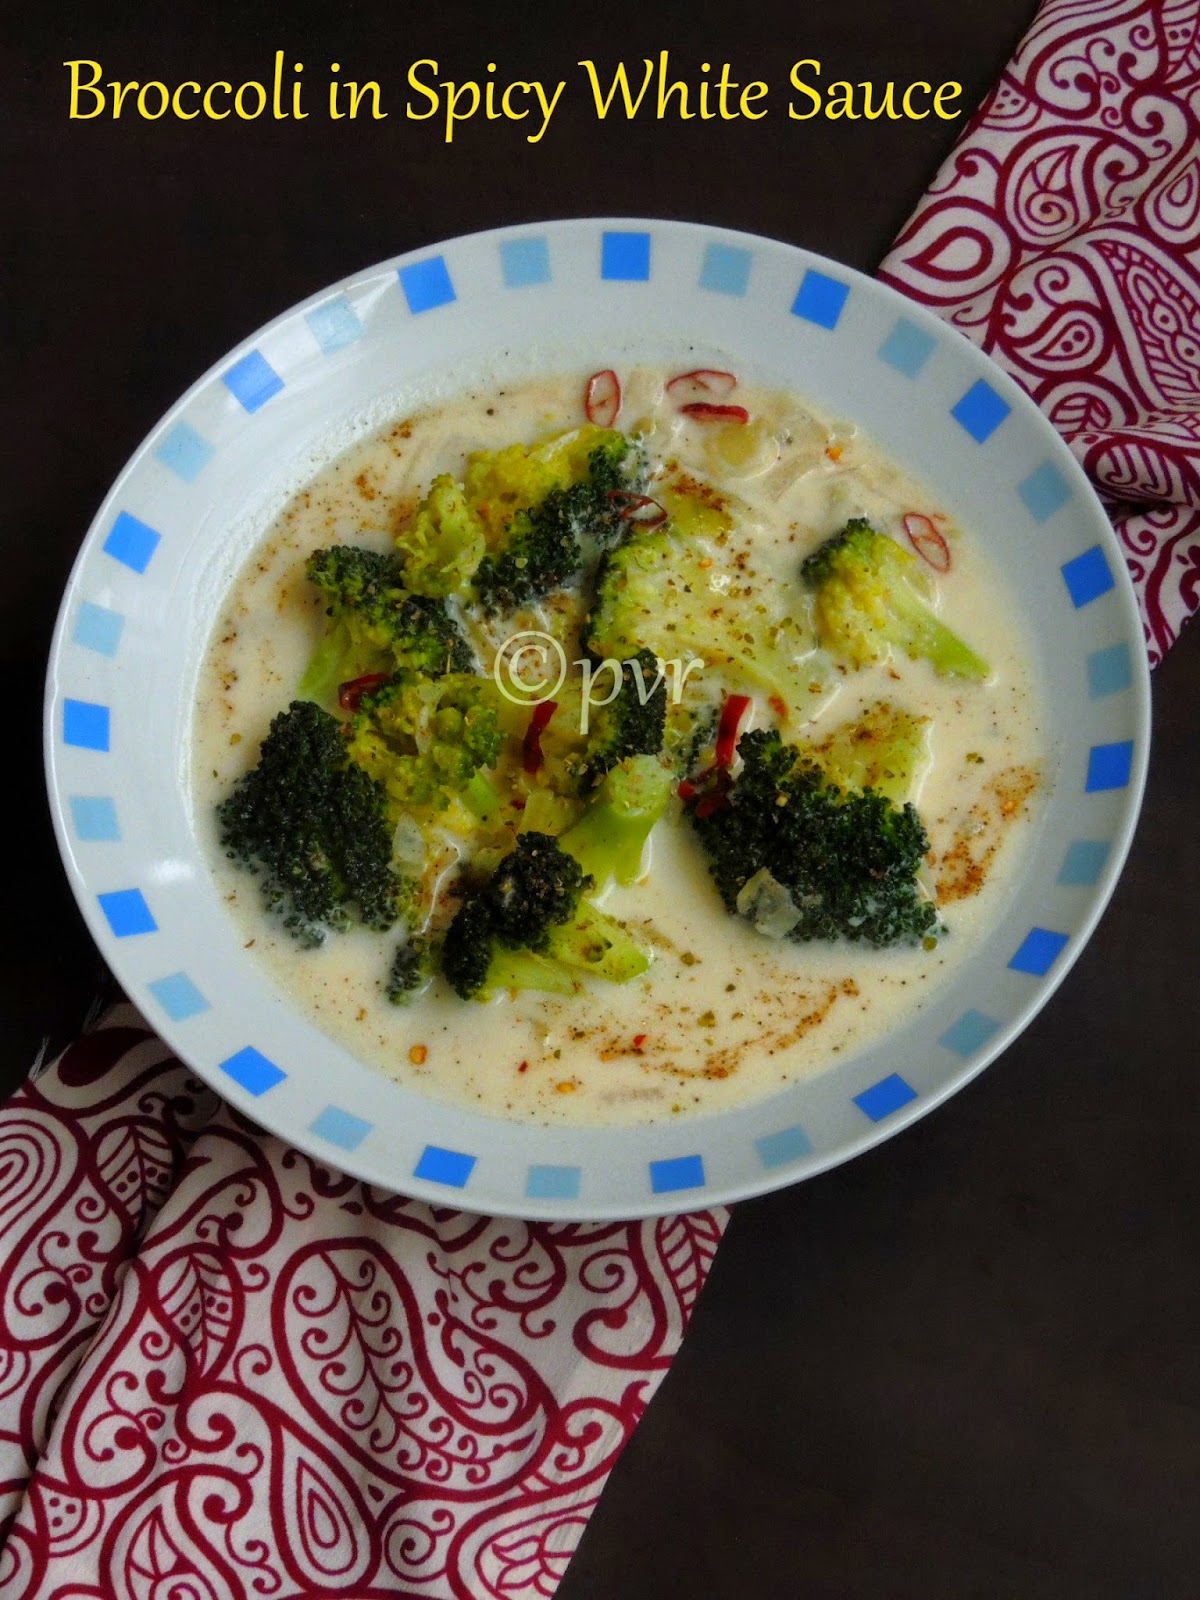 Broccoli in spicy white sauce